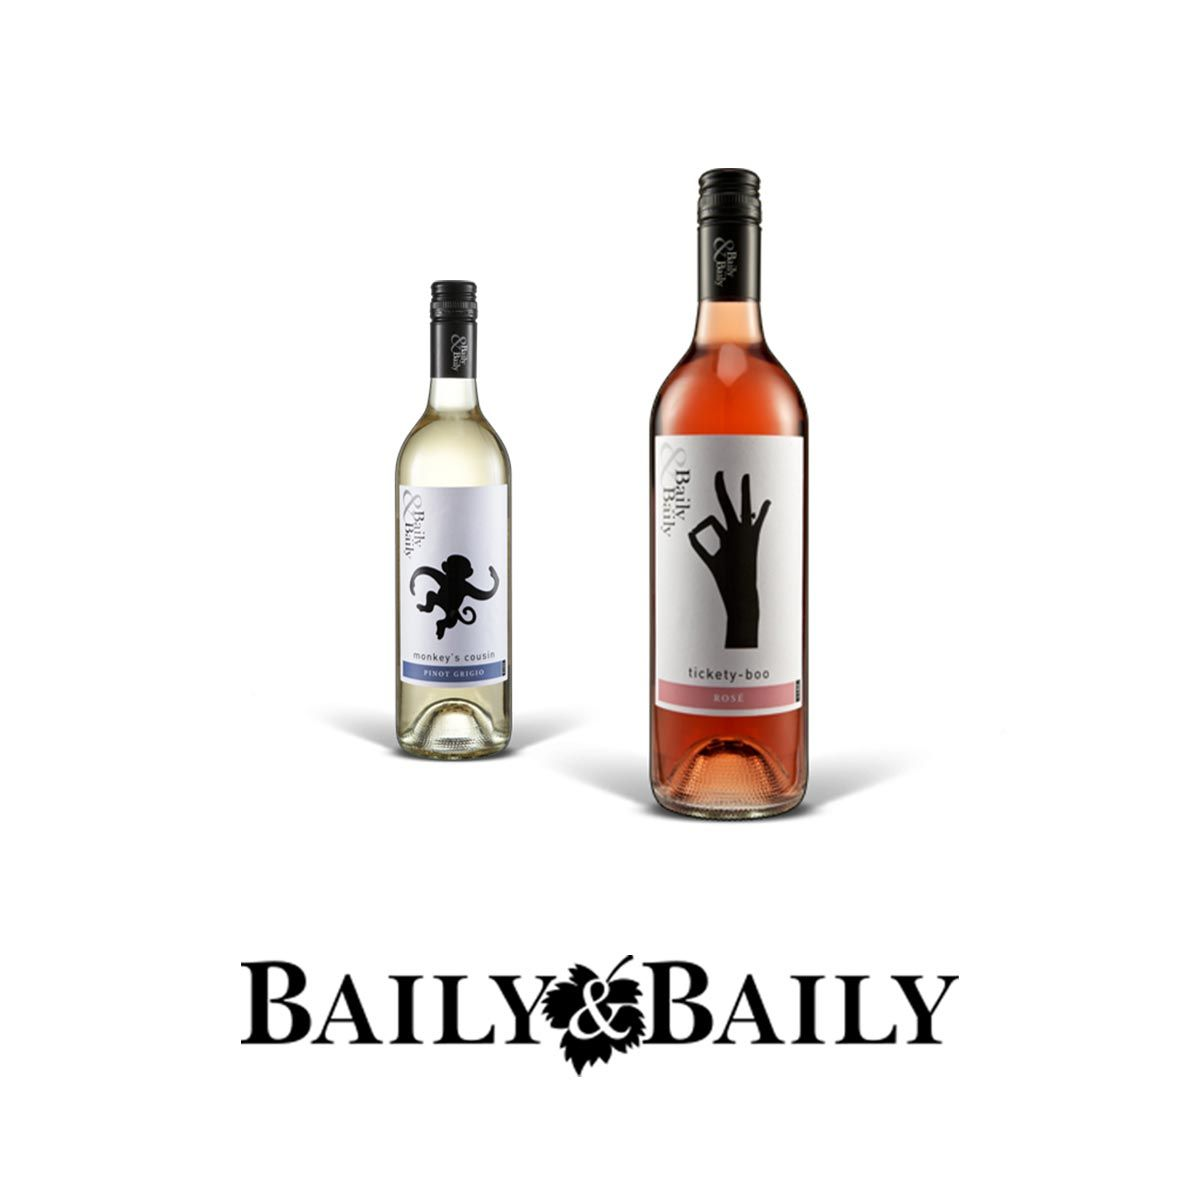 [REVIEW] Baily & Baily Label Release